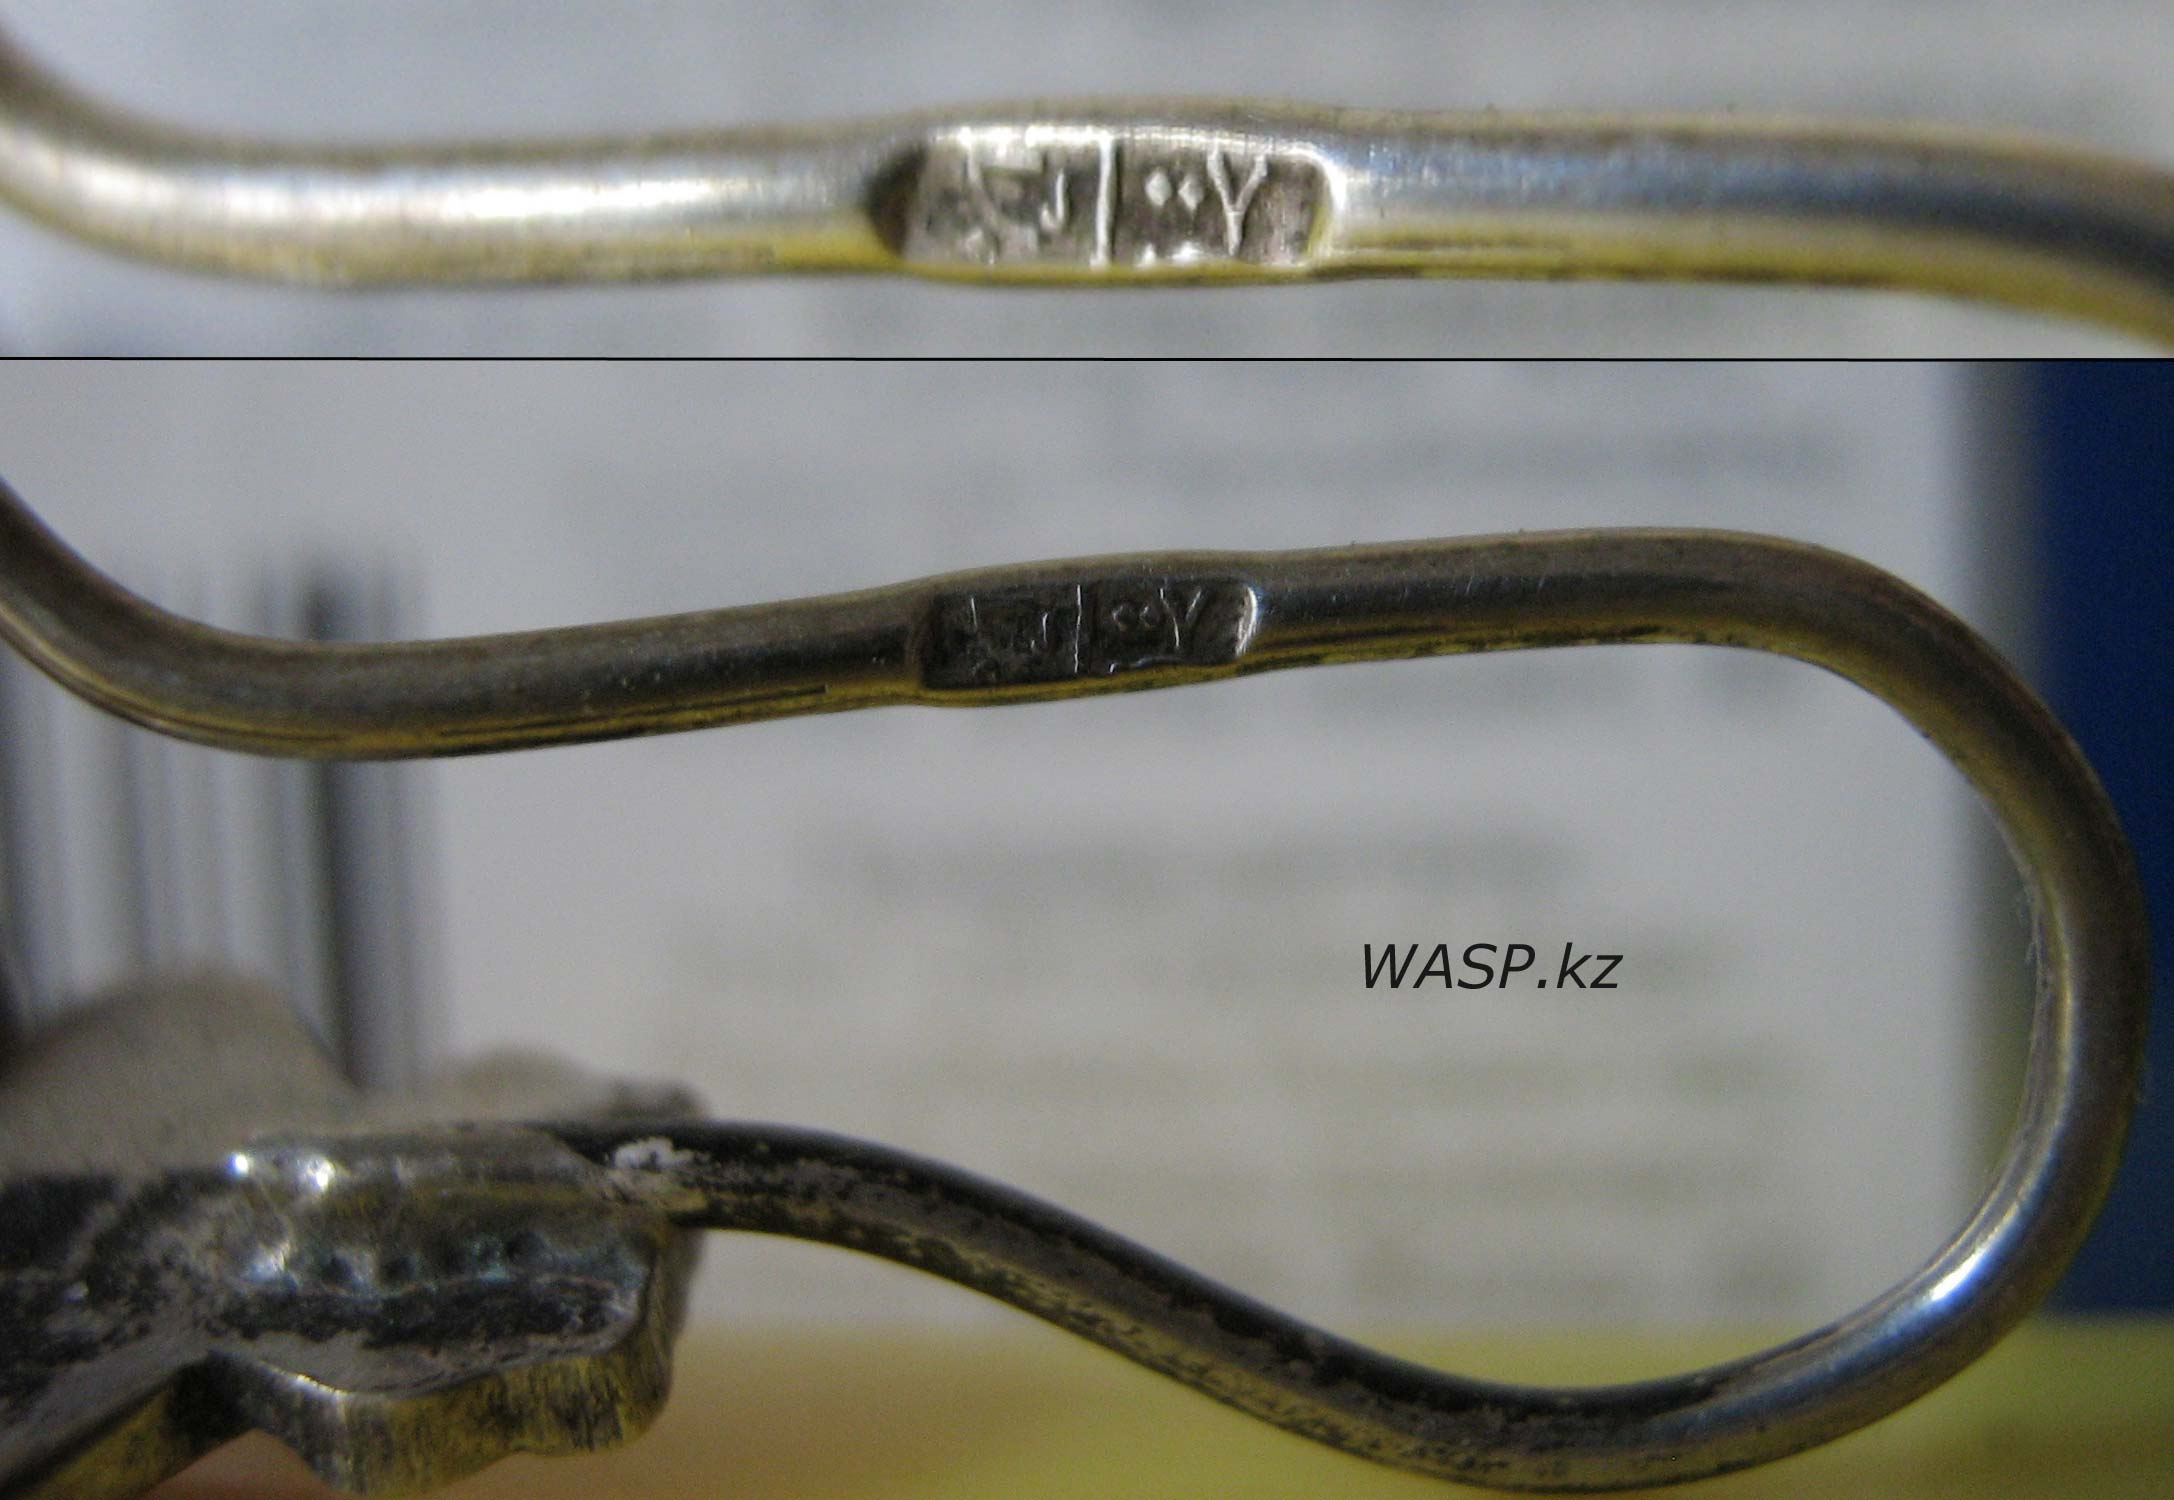 wasp.kz/images/articles/5_875-silver_import_pr.jpg